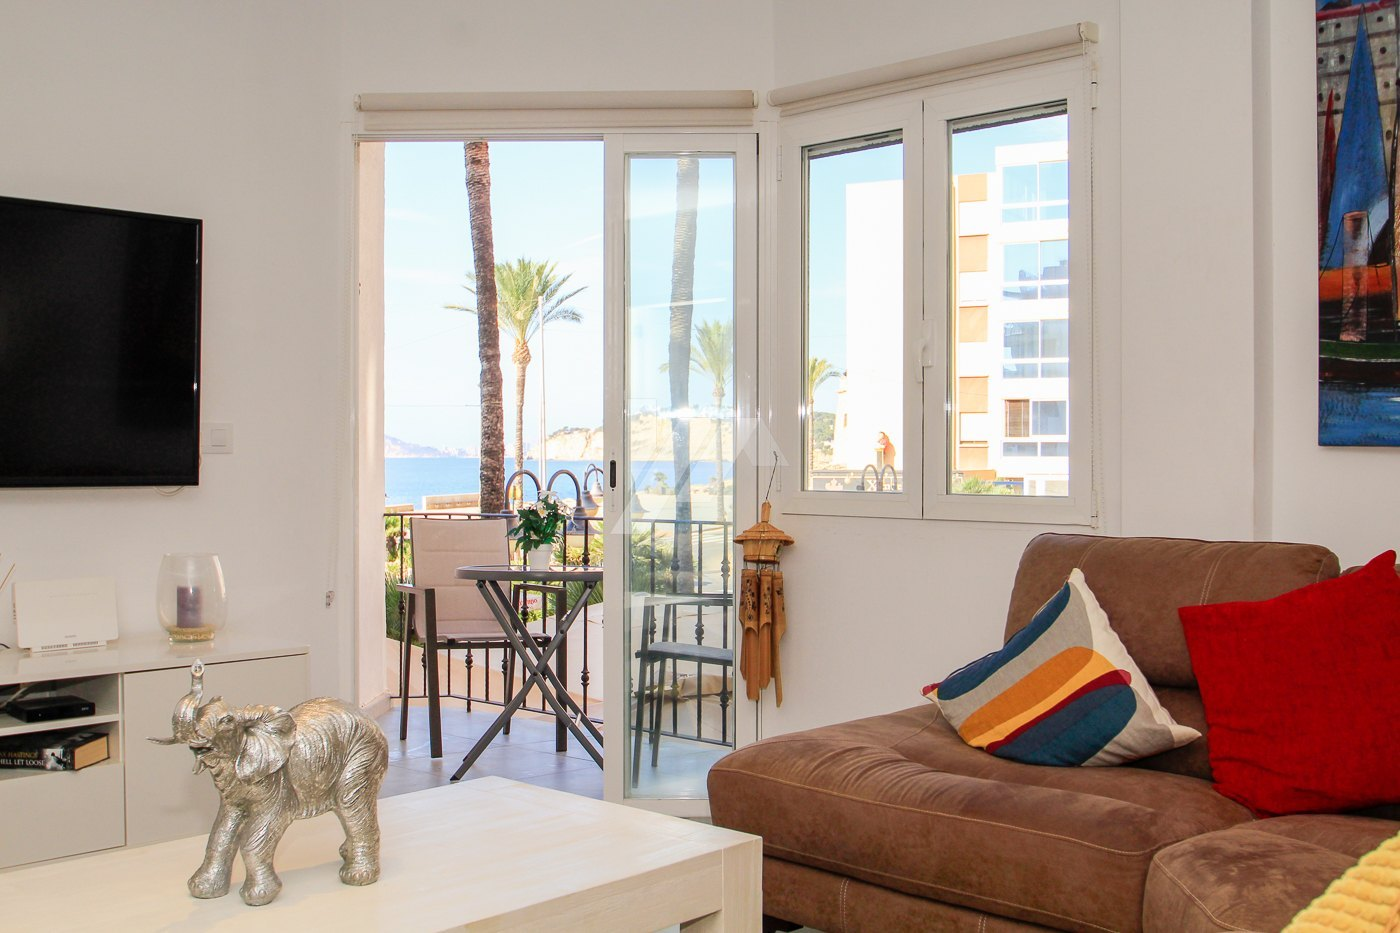 Luxury sea view apartment for sale in the center of Moraira.